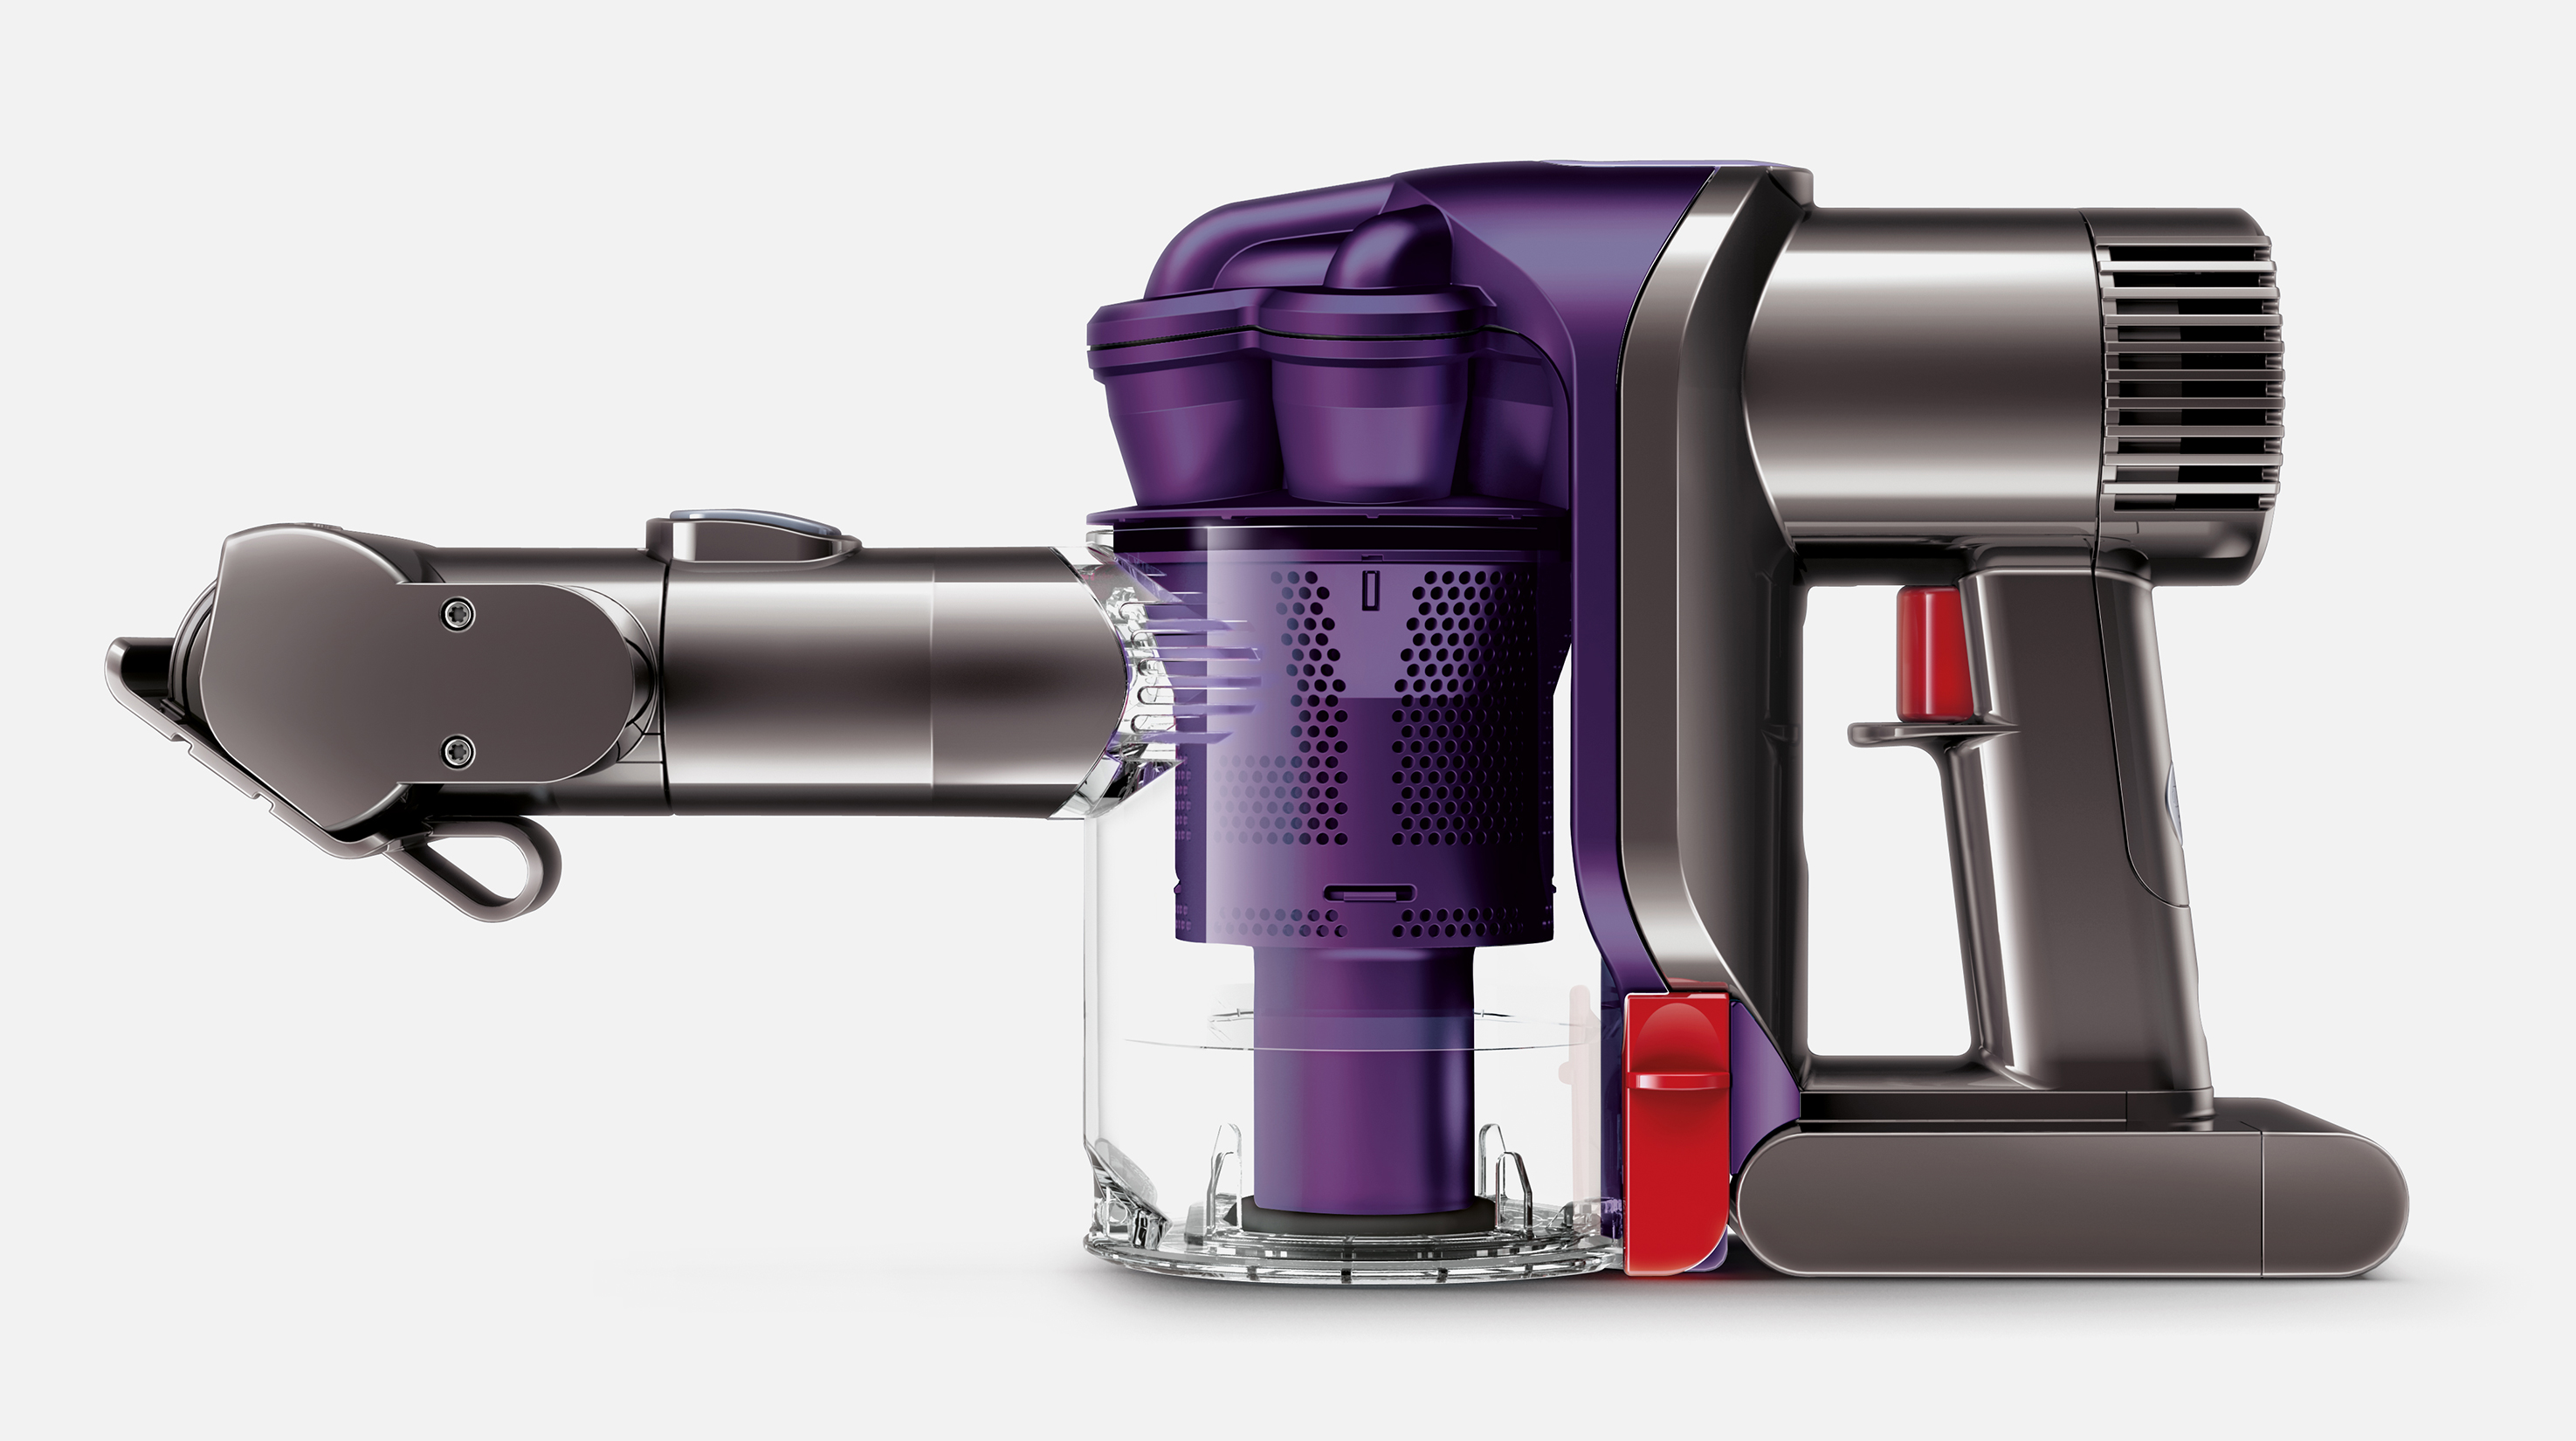 The Dyson Handheld